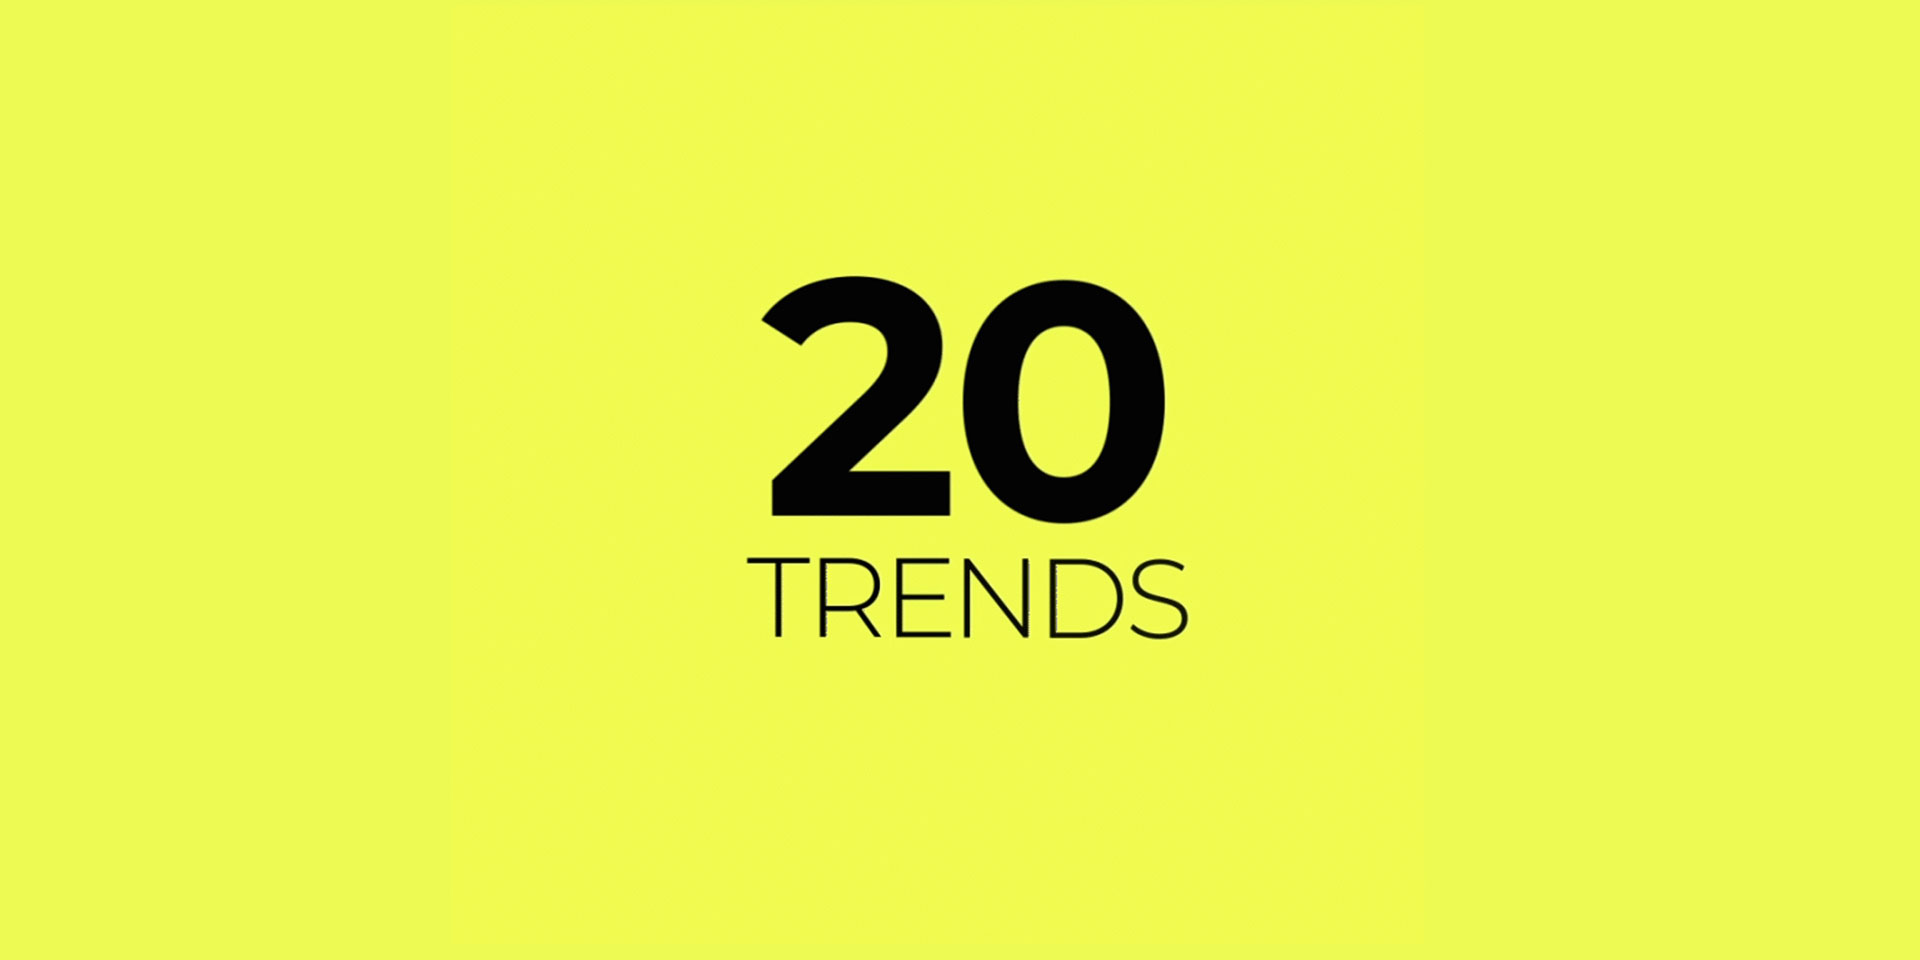 Our top 20 trends in 2020